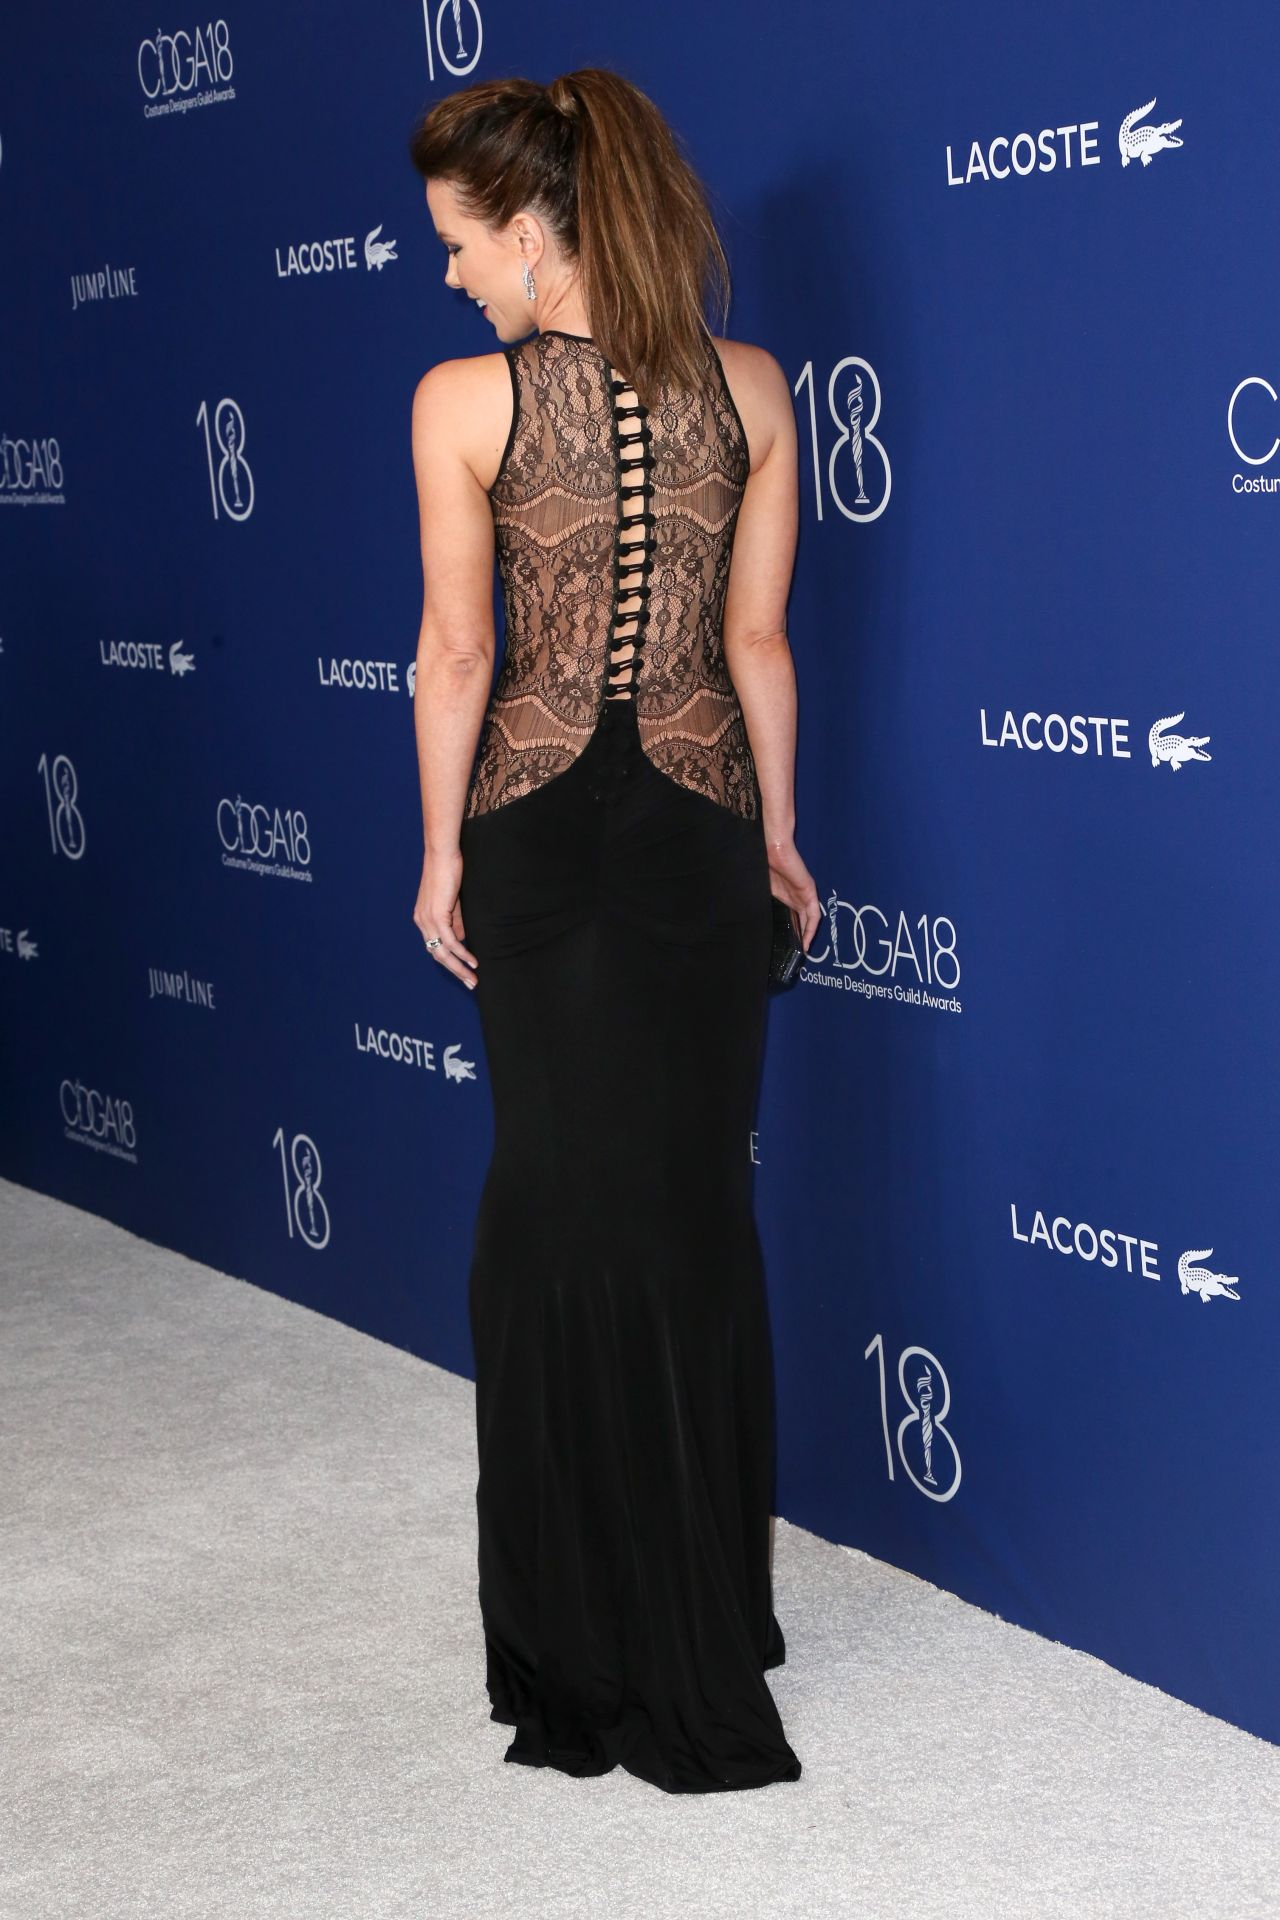 kate-beckinsale-costume-designers-guild-awards-2016-with-lacoste-in-beverly-hills-7